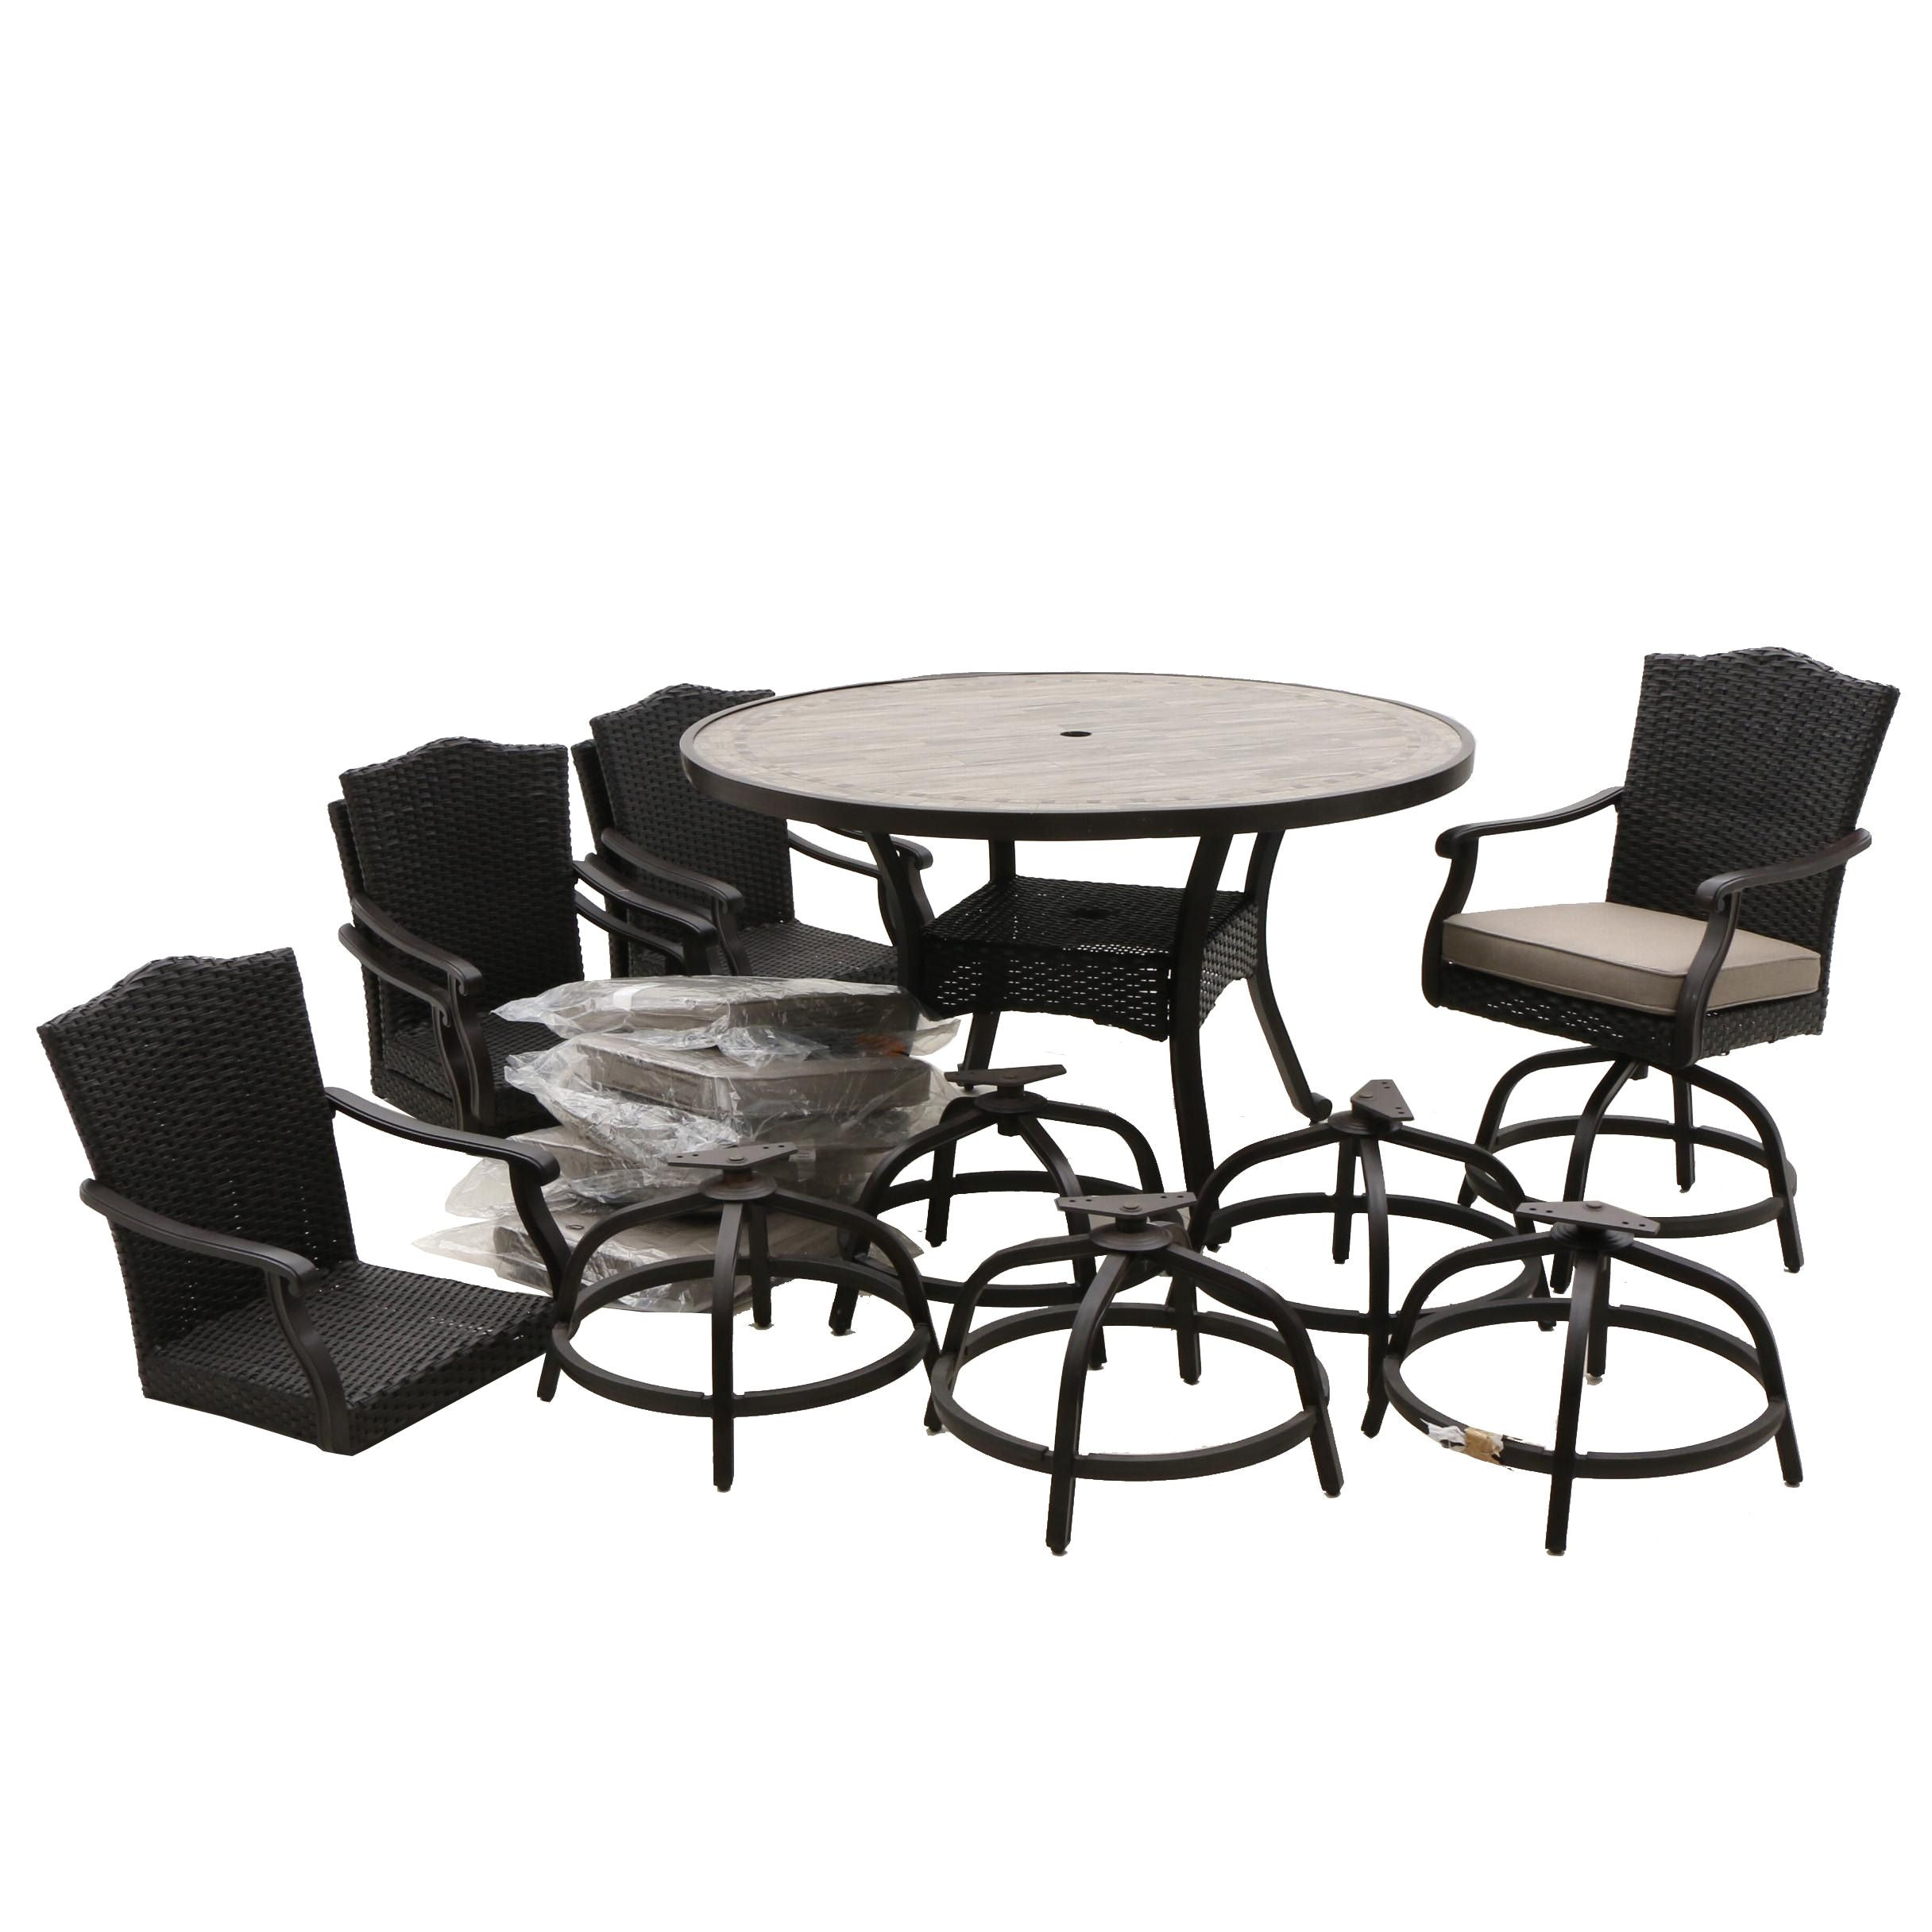 "Outdoor ""Sunbrella"" Chairs and Table Set"